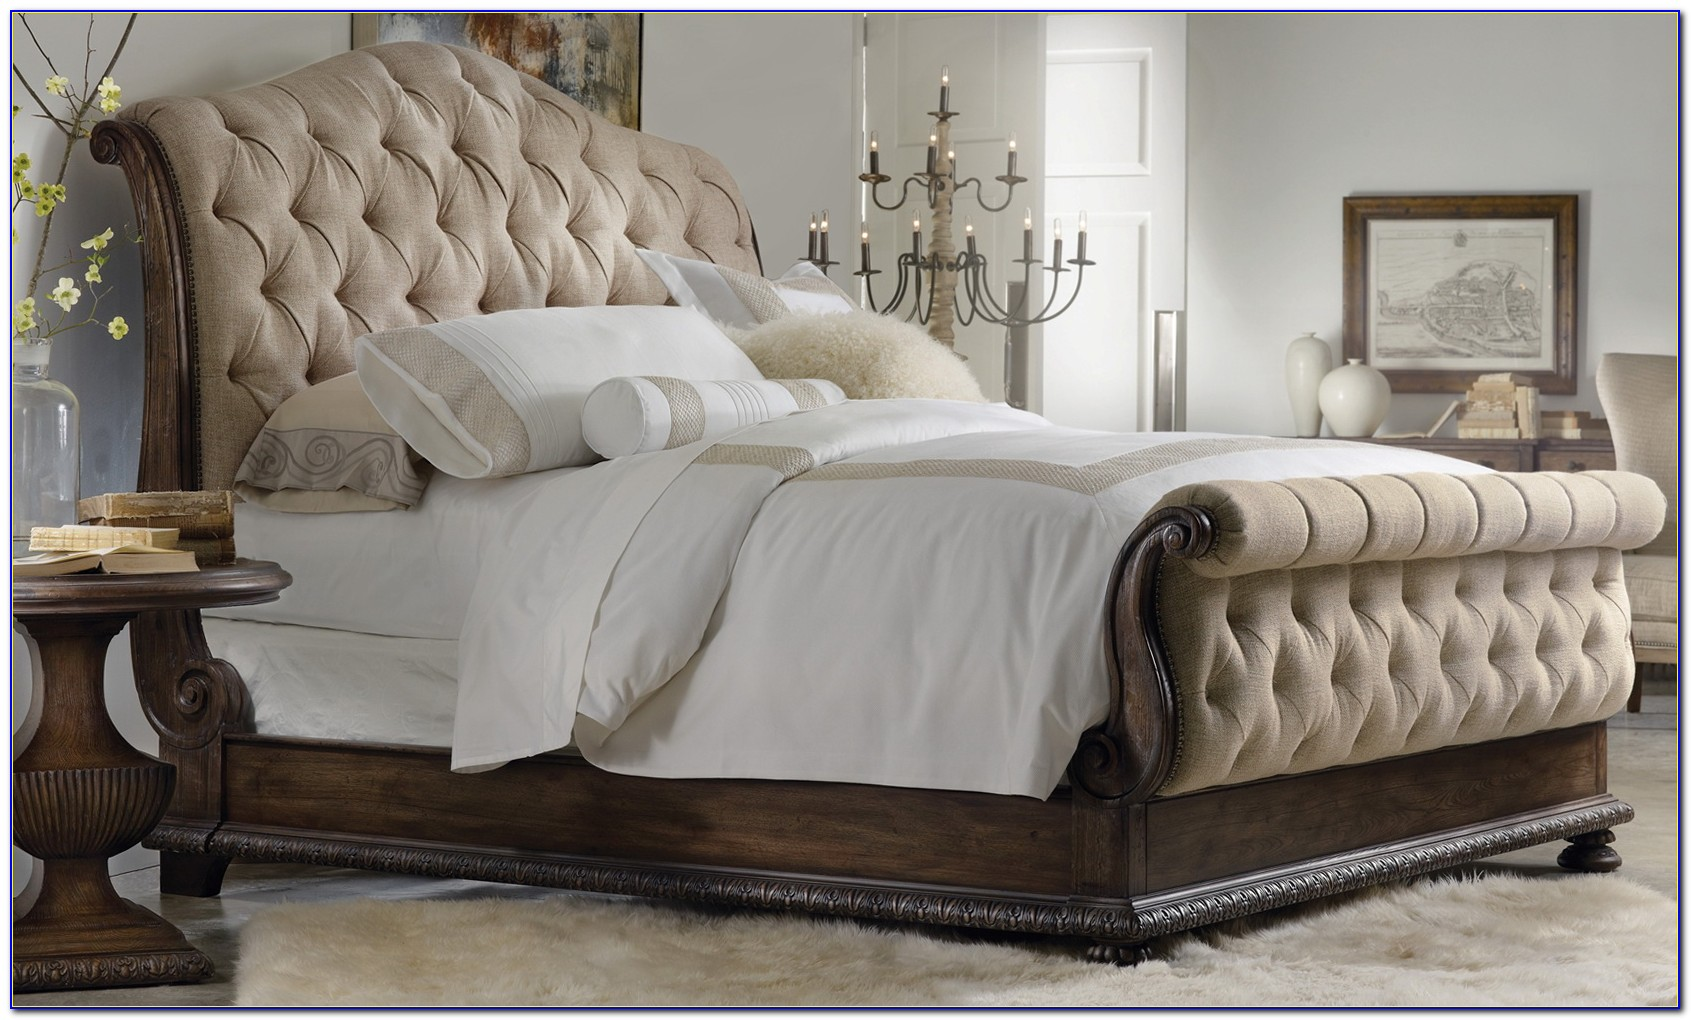 Tufted Headboard King Bed